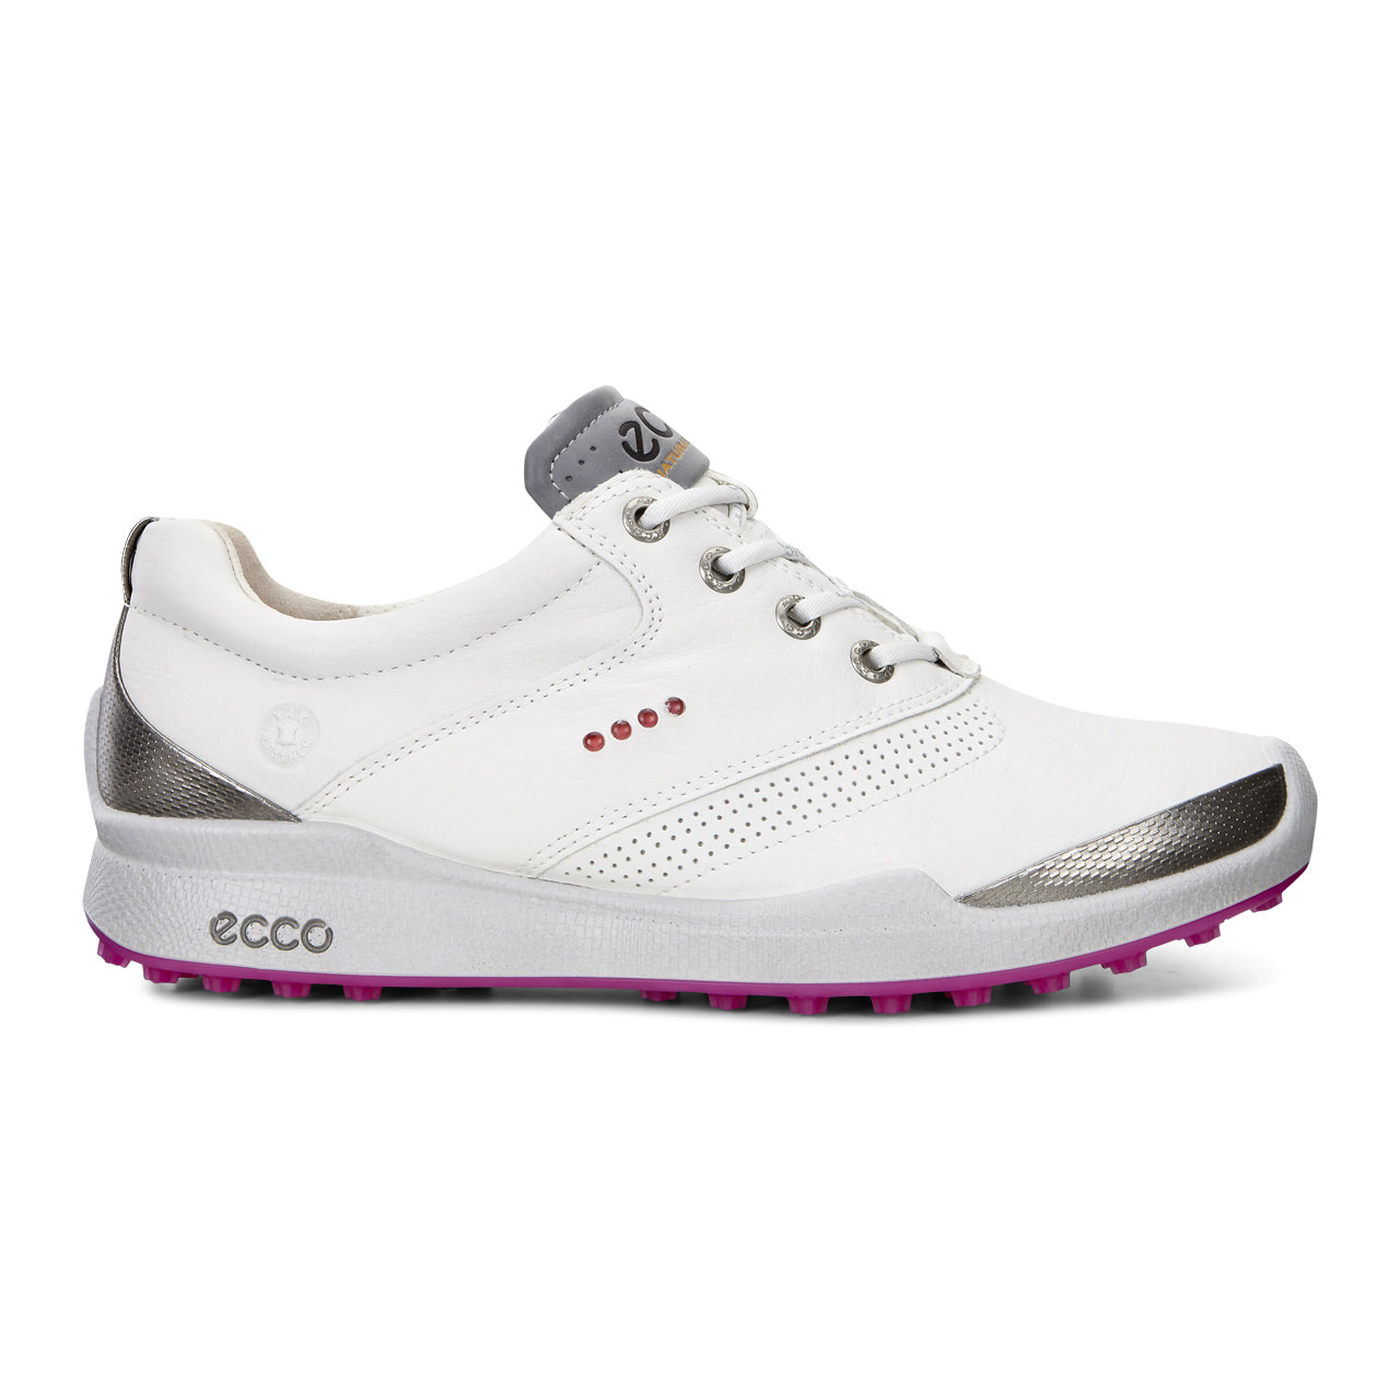 Ecco Womens Biom Hybrid Hm Golf Shoes